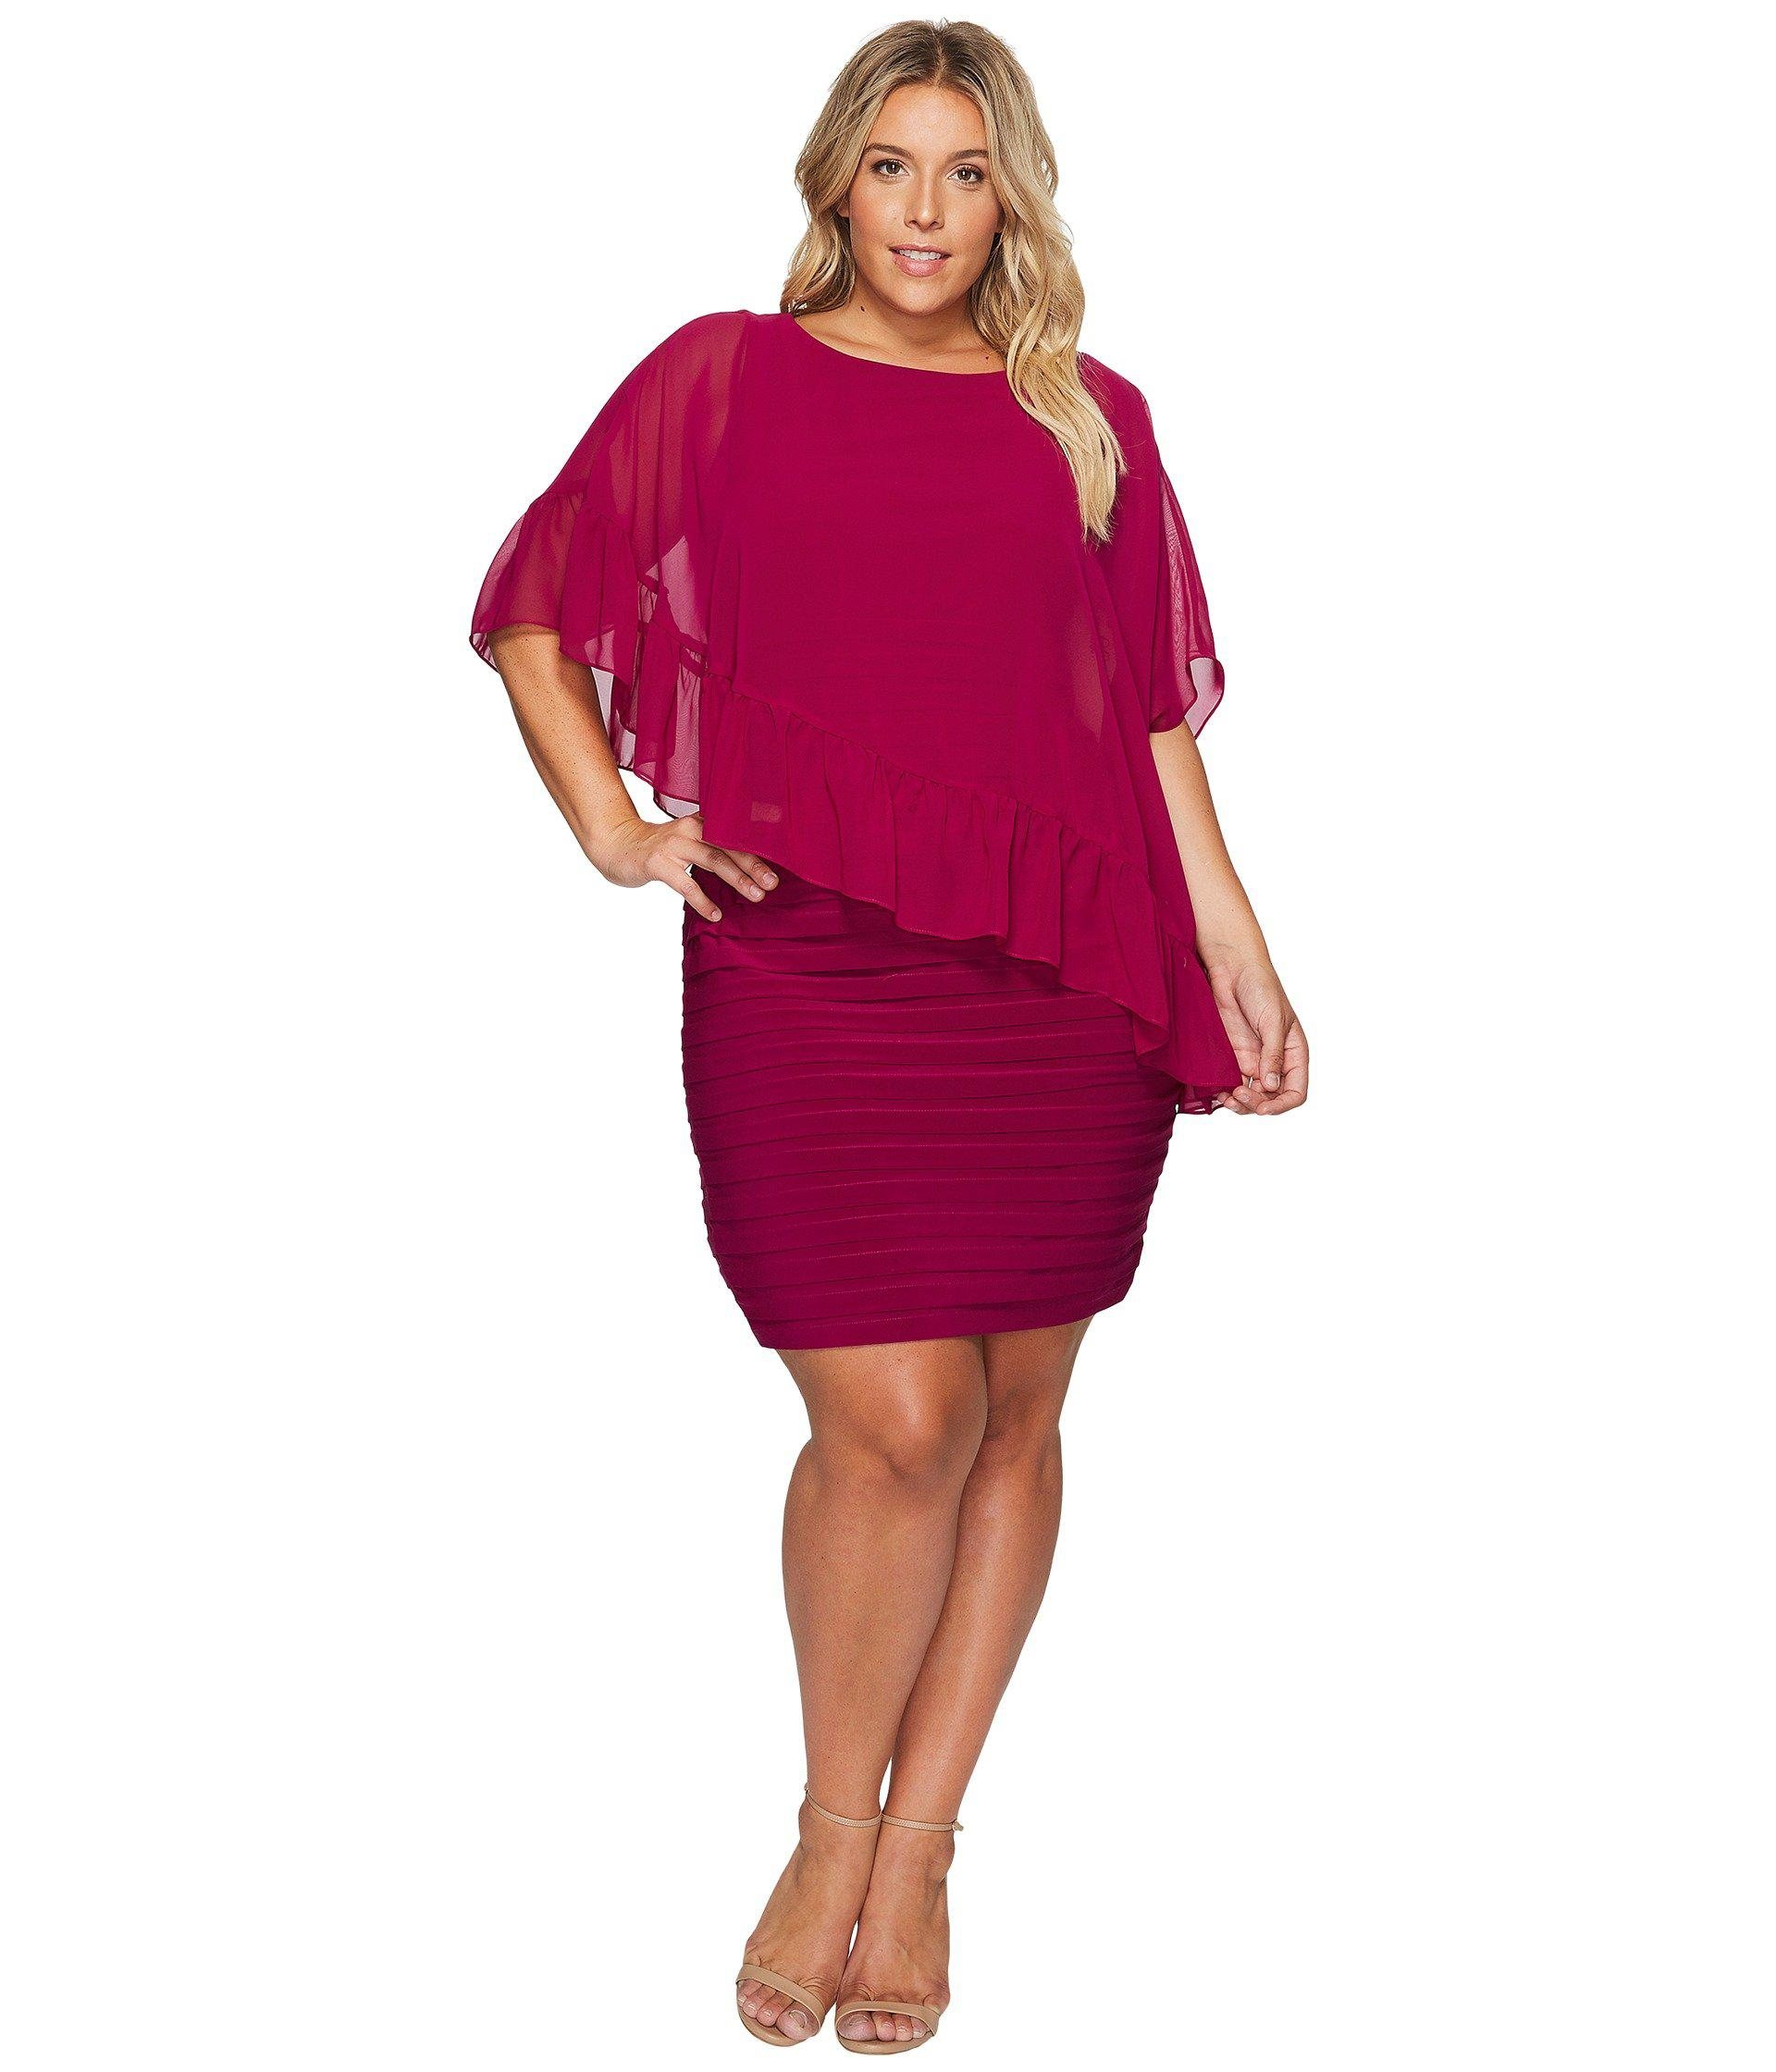 7287b41a6dd Gallery. Previously sold at: 6PM · Women's Adrianna Papell Sheath Dress ...